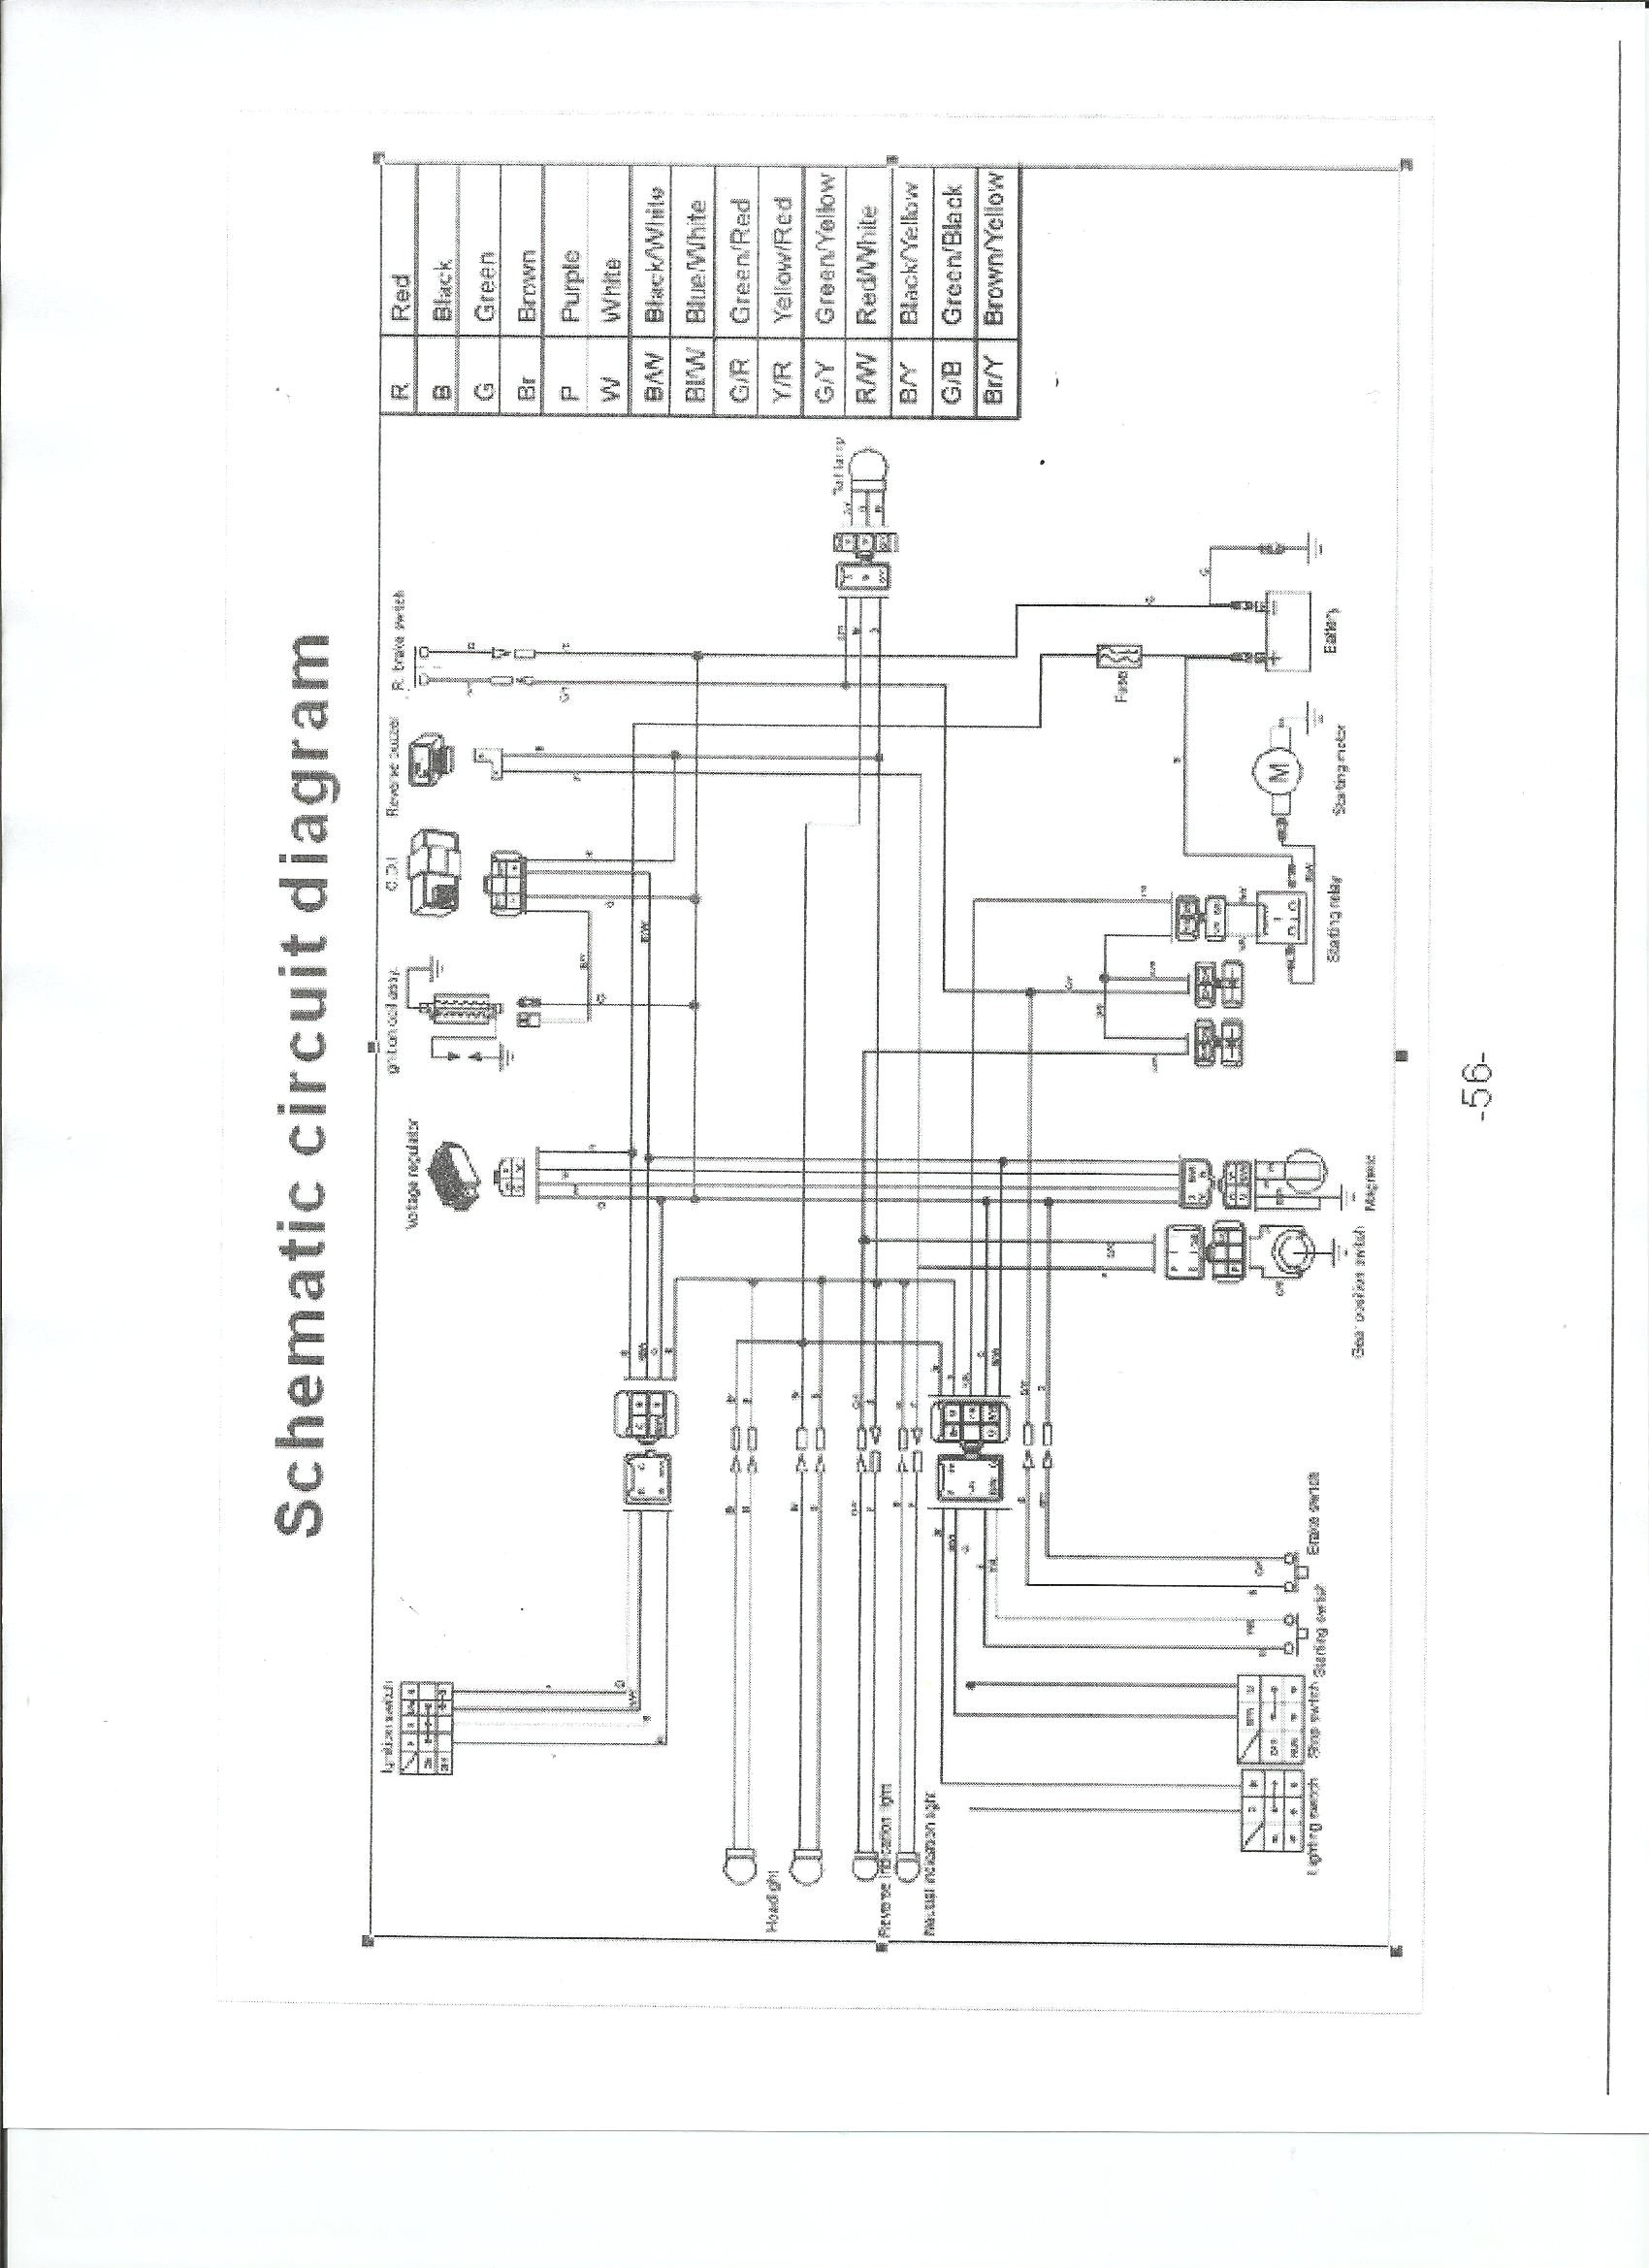 hight resolution of tao tao 50cc moped wiring diagram example electrical wiring diagram u2022 jonway 50cc scooter wiring